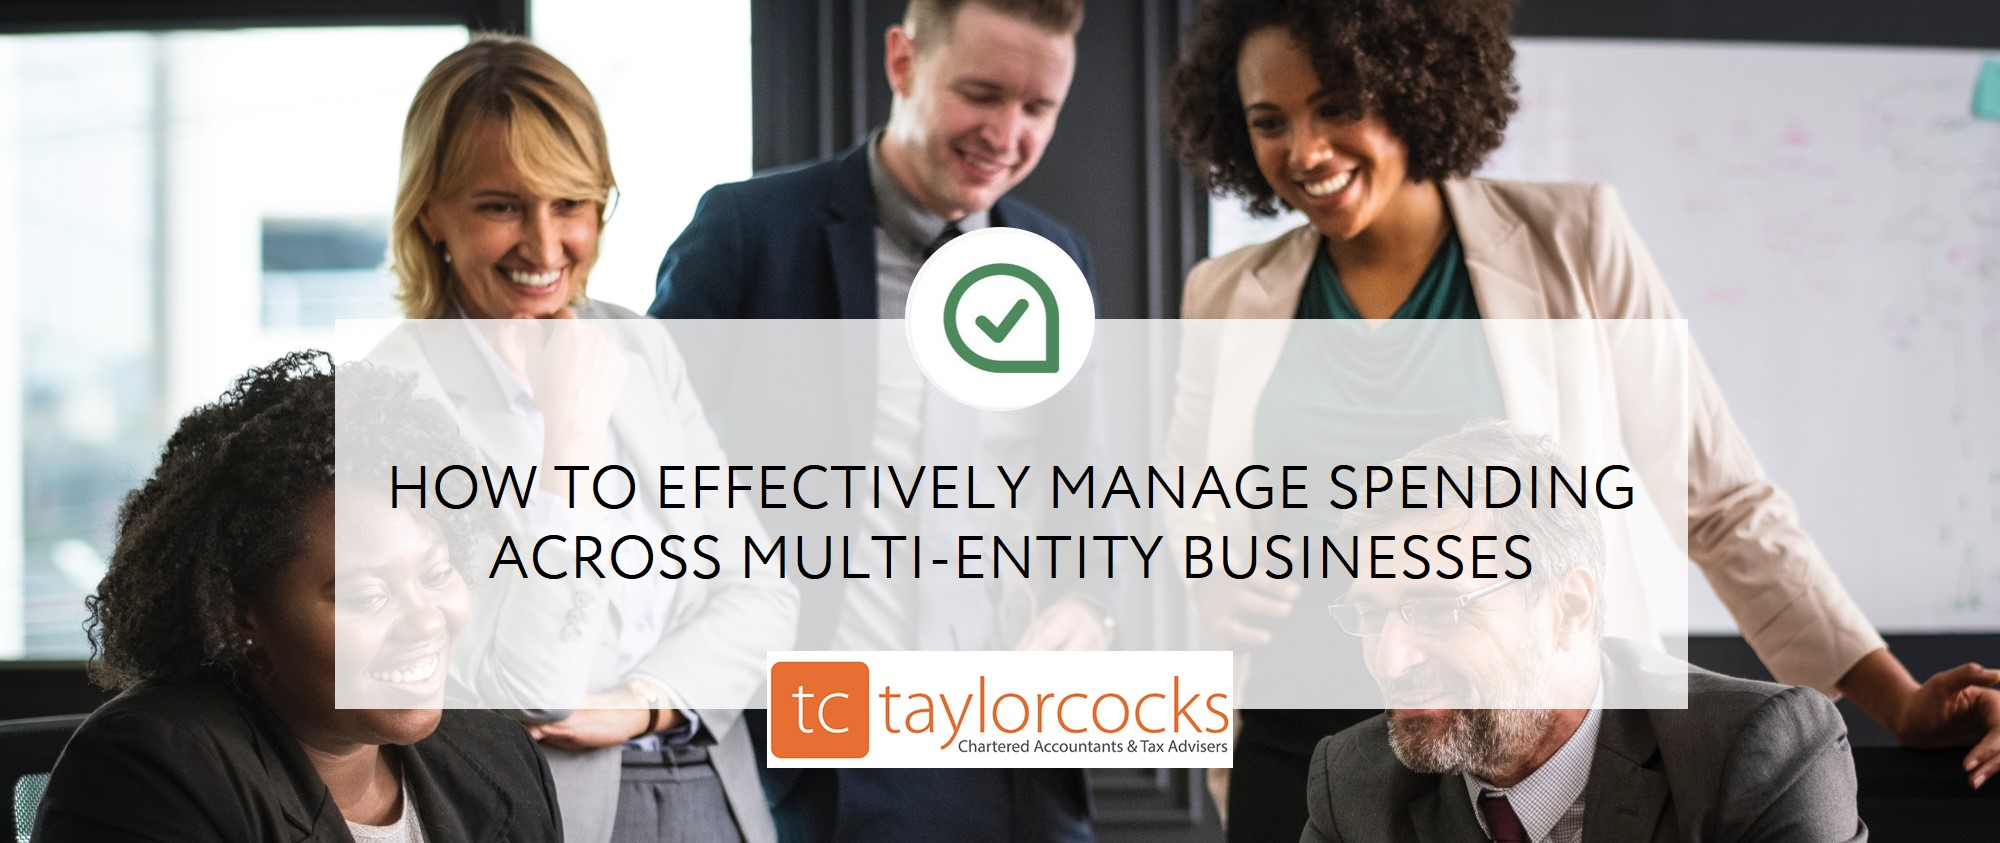 Success Story: How to effectively manage spending across multi-entity businesses